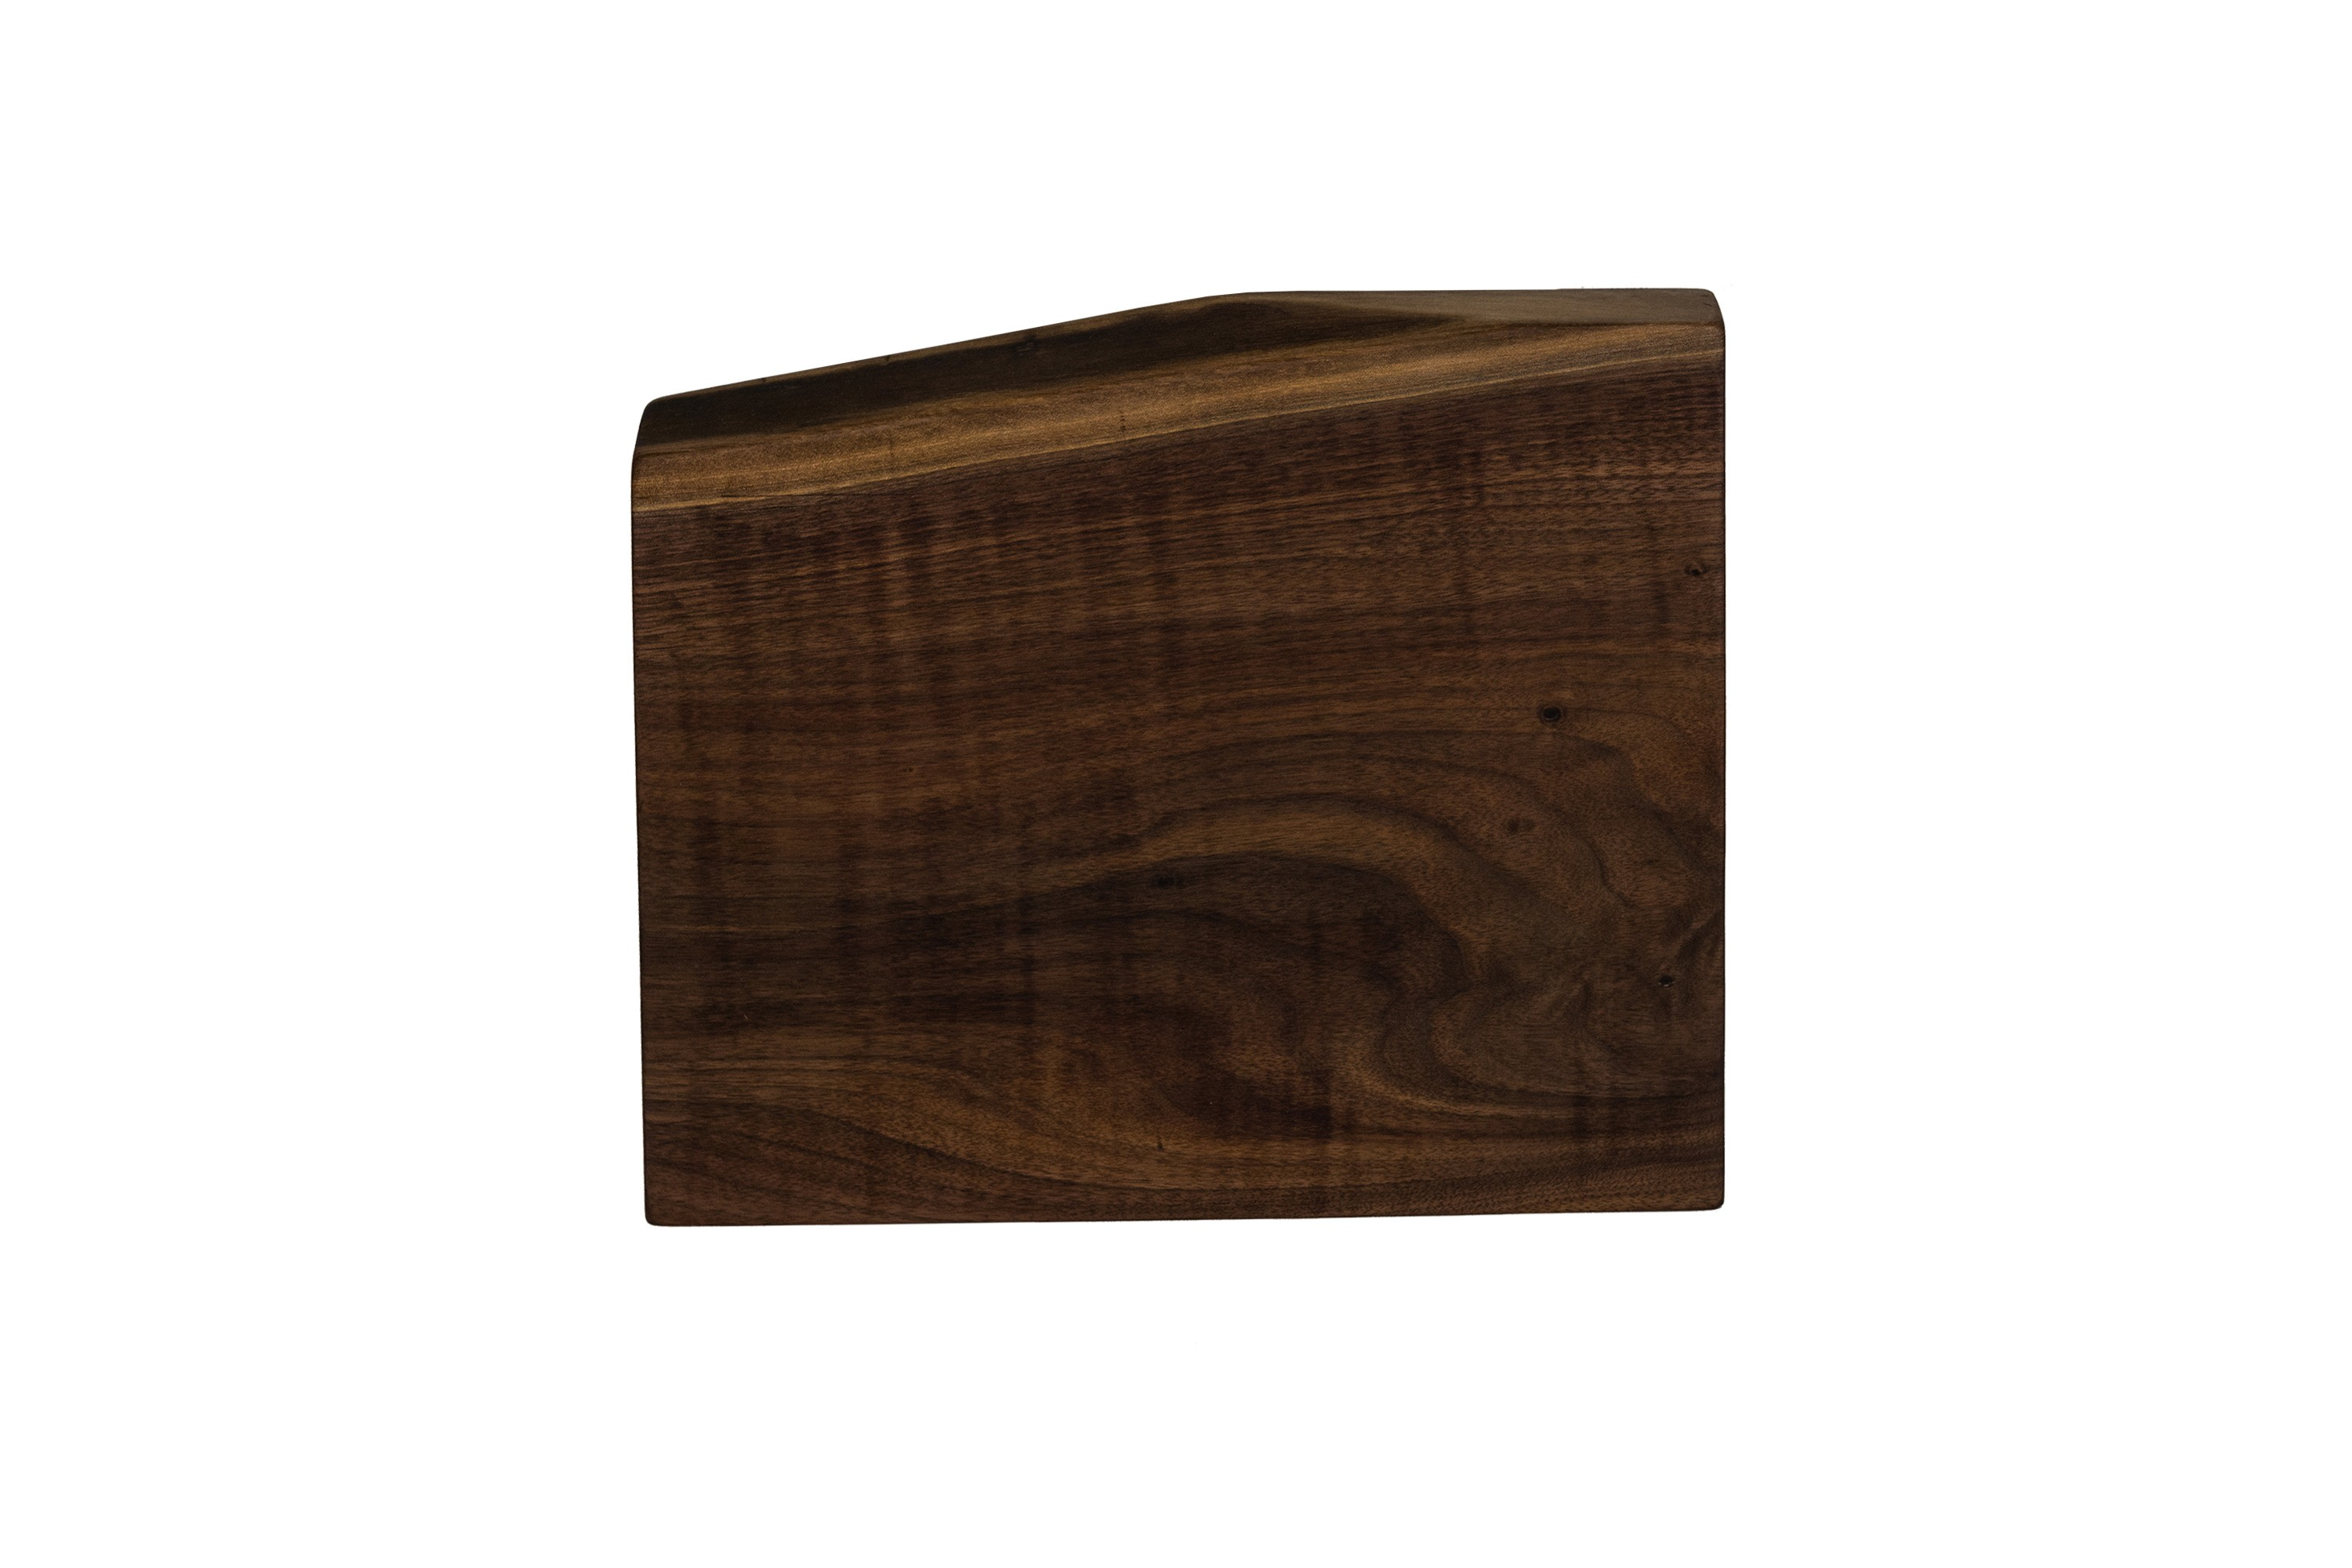 Live Edge Walnut Cutting Board #108 - 15